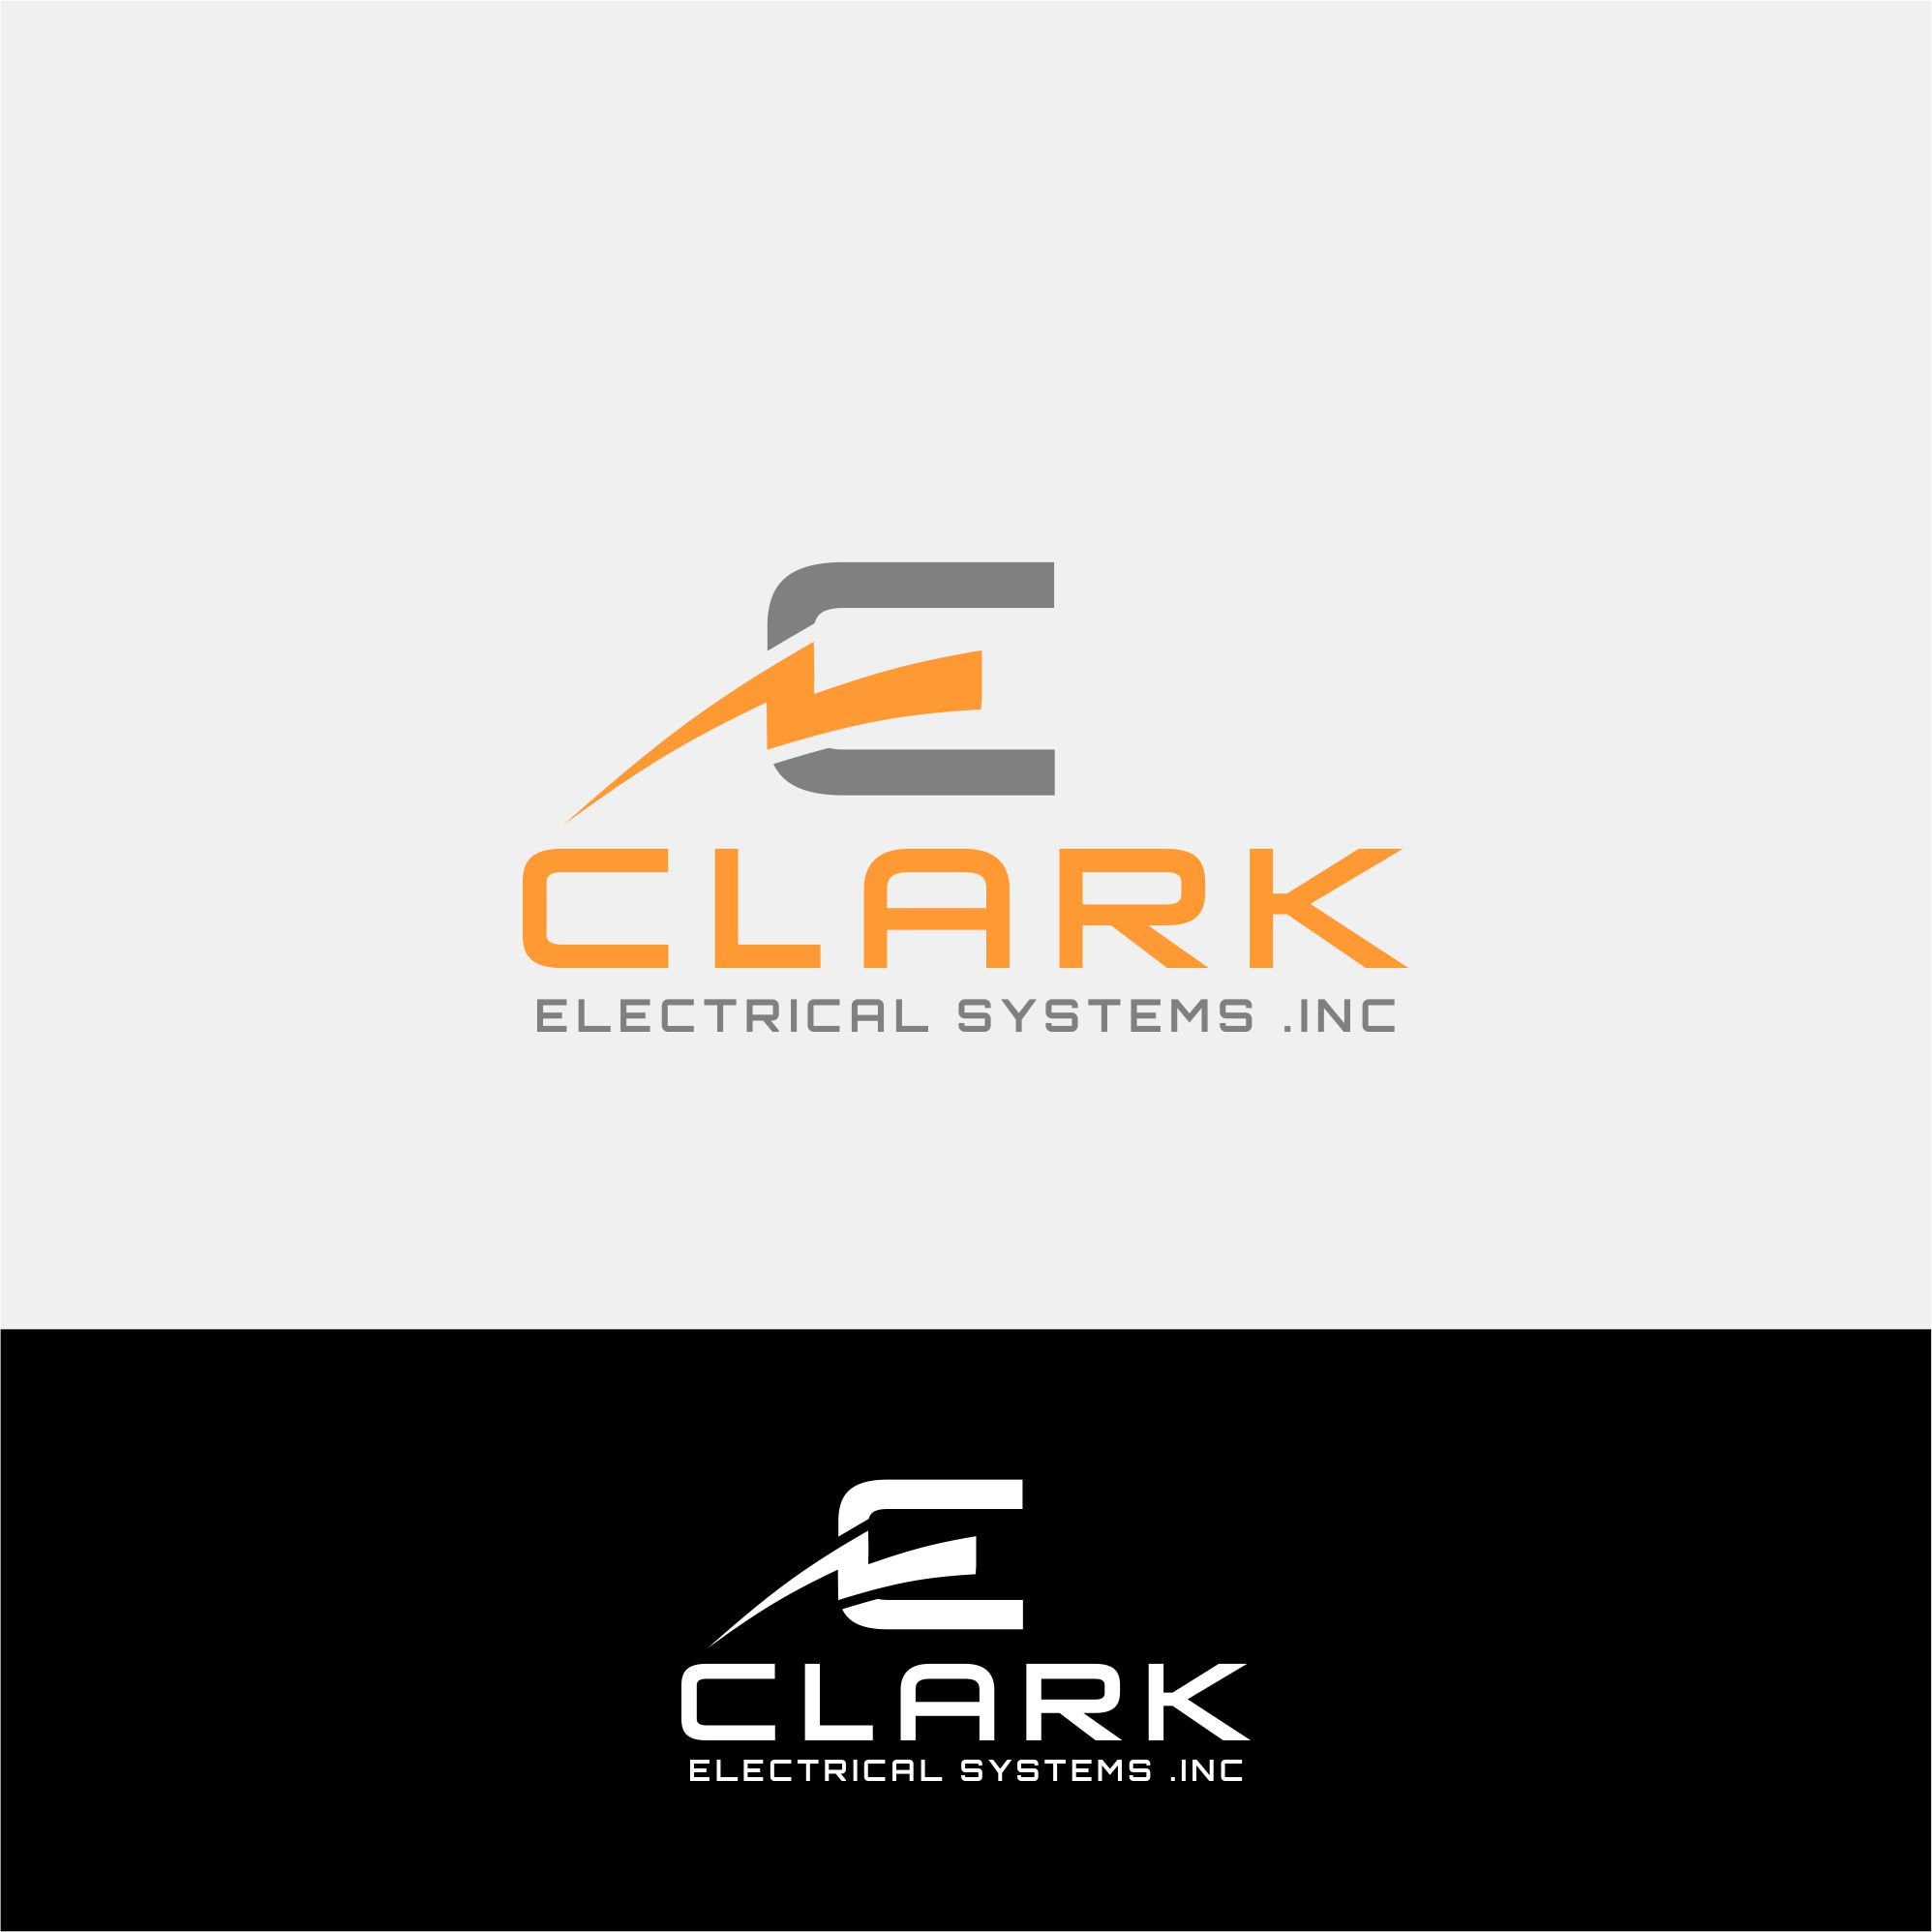 Logo Design by Fredi Santoso - Entry No. 14 in the Logo Design Contest Artistic Logo Design for Clark Electrical Systems Inc..